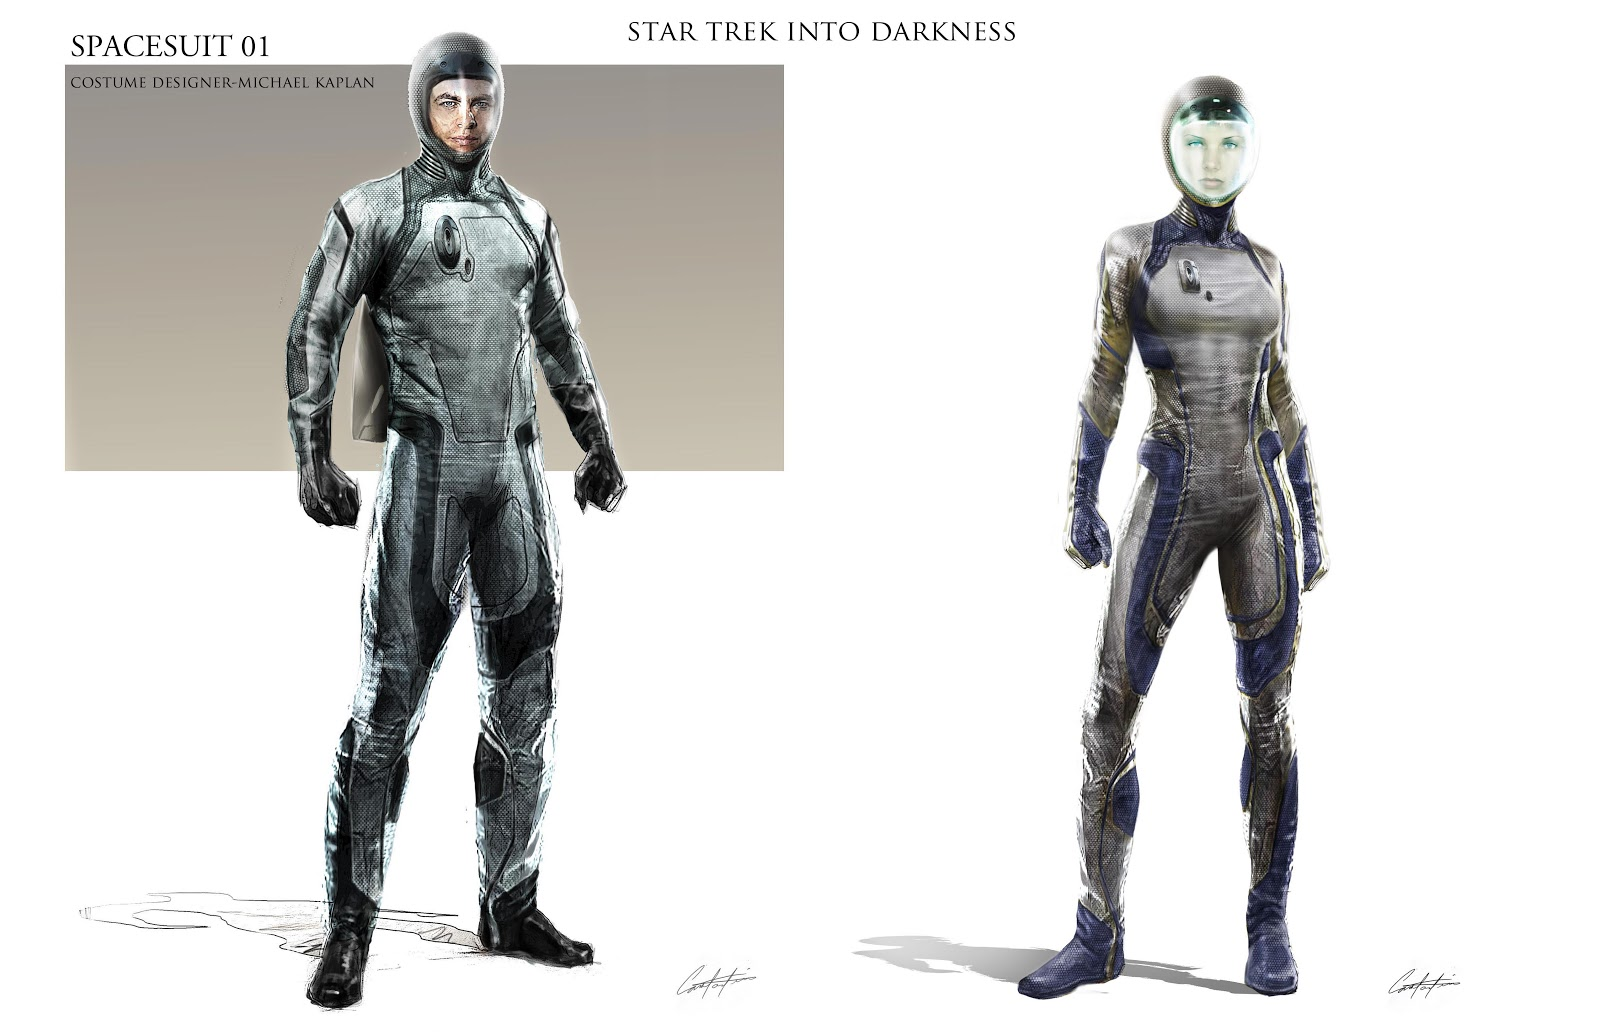 Futuristic Space Suits - Pics about space